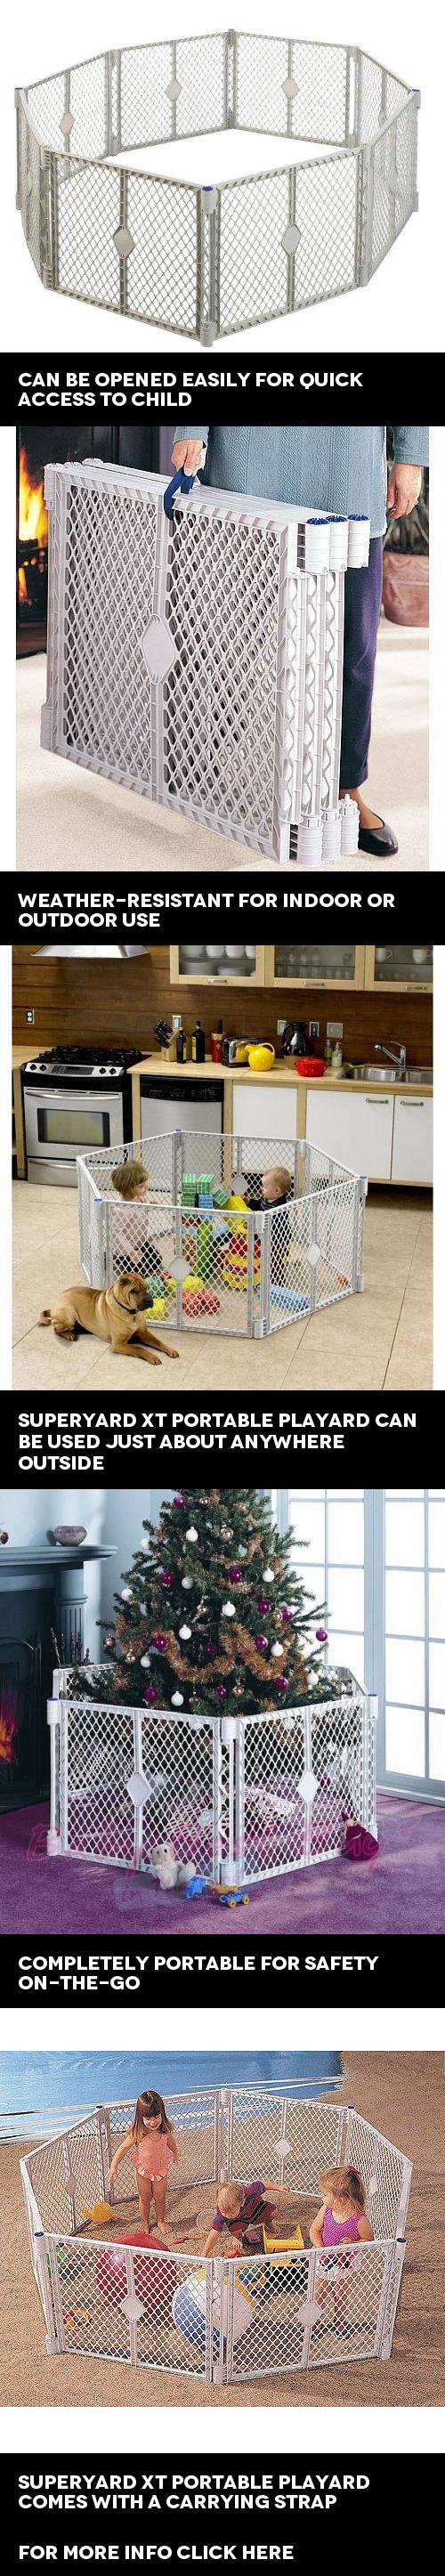 North States   Superyard XT Portable Playard, Designed For Both Indoor And  Outdoor Use,